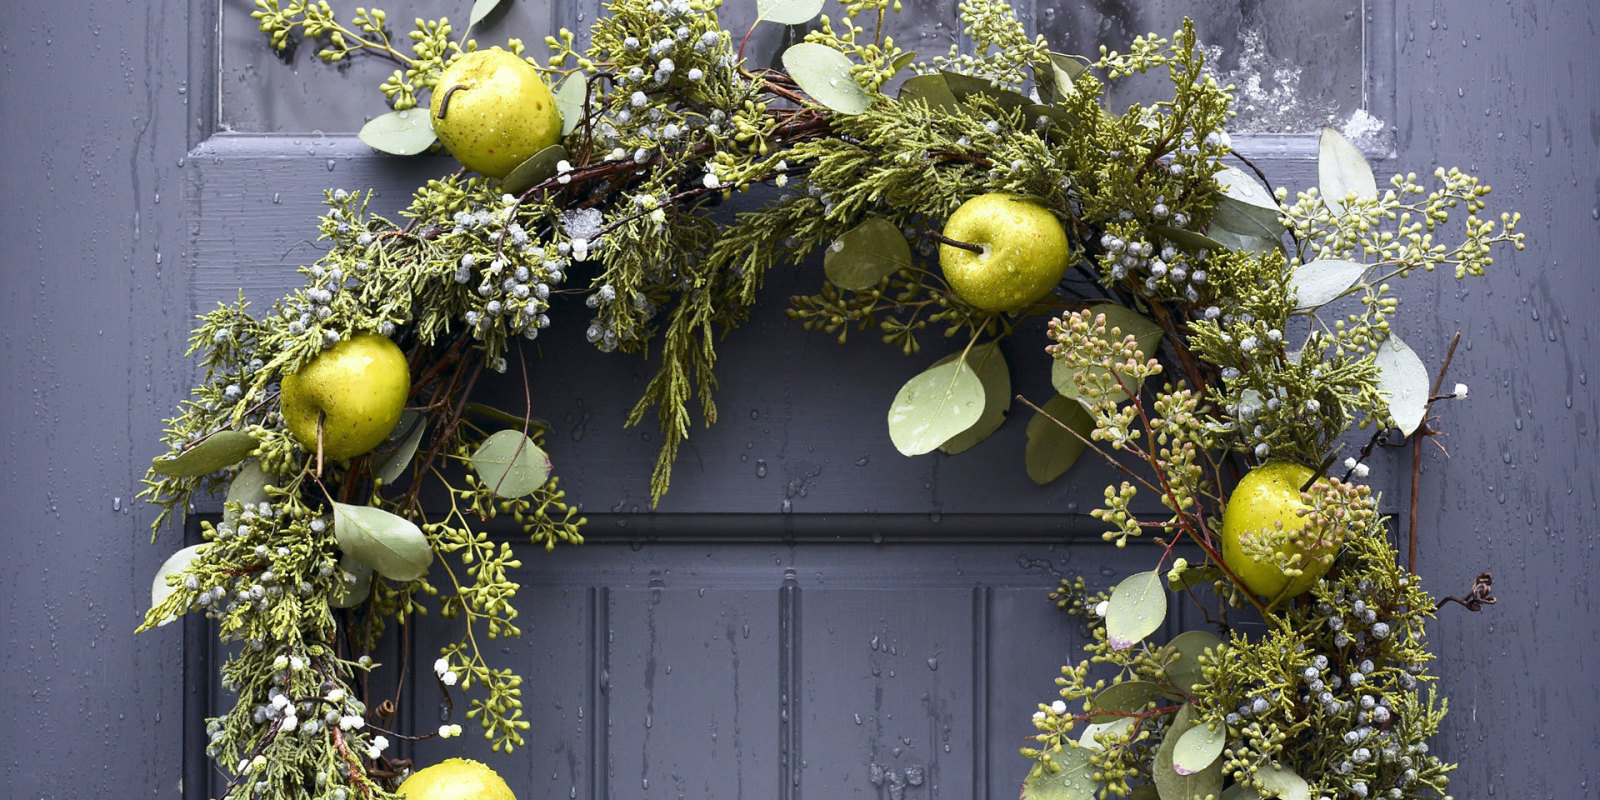 Fruit over the door christmas decoration - Fruit Over The Door Christmas Decoration 24